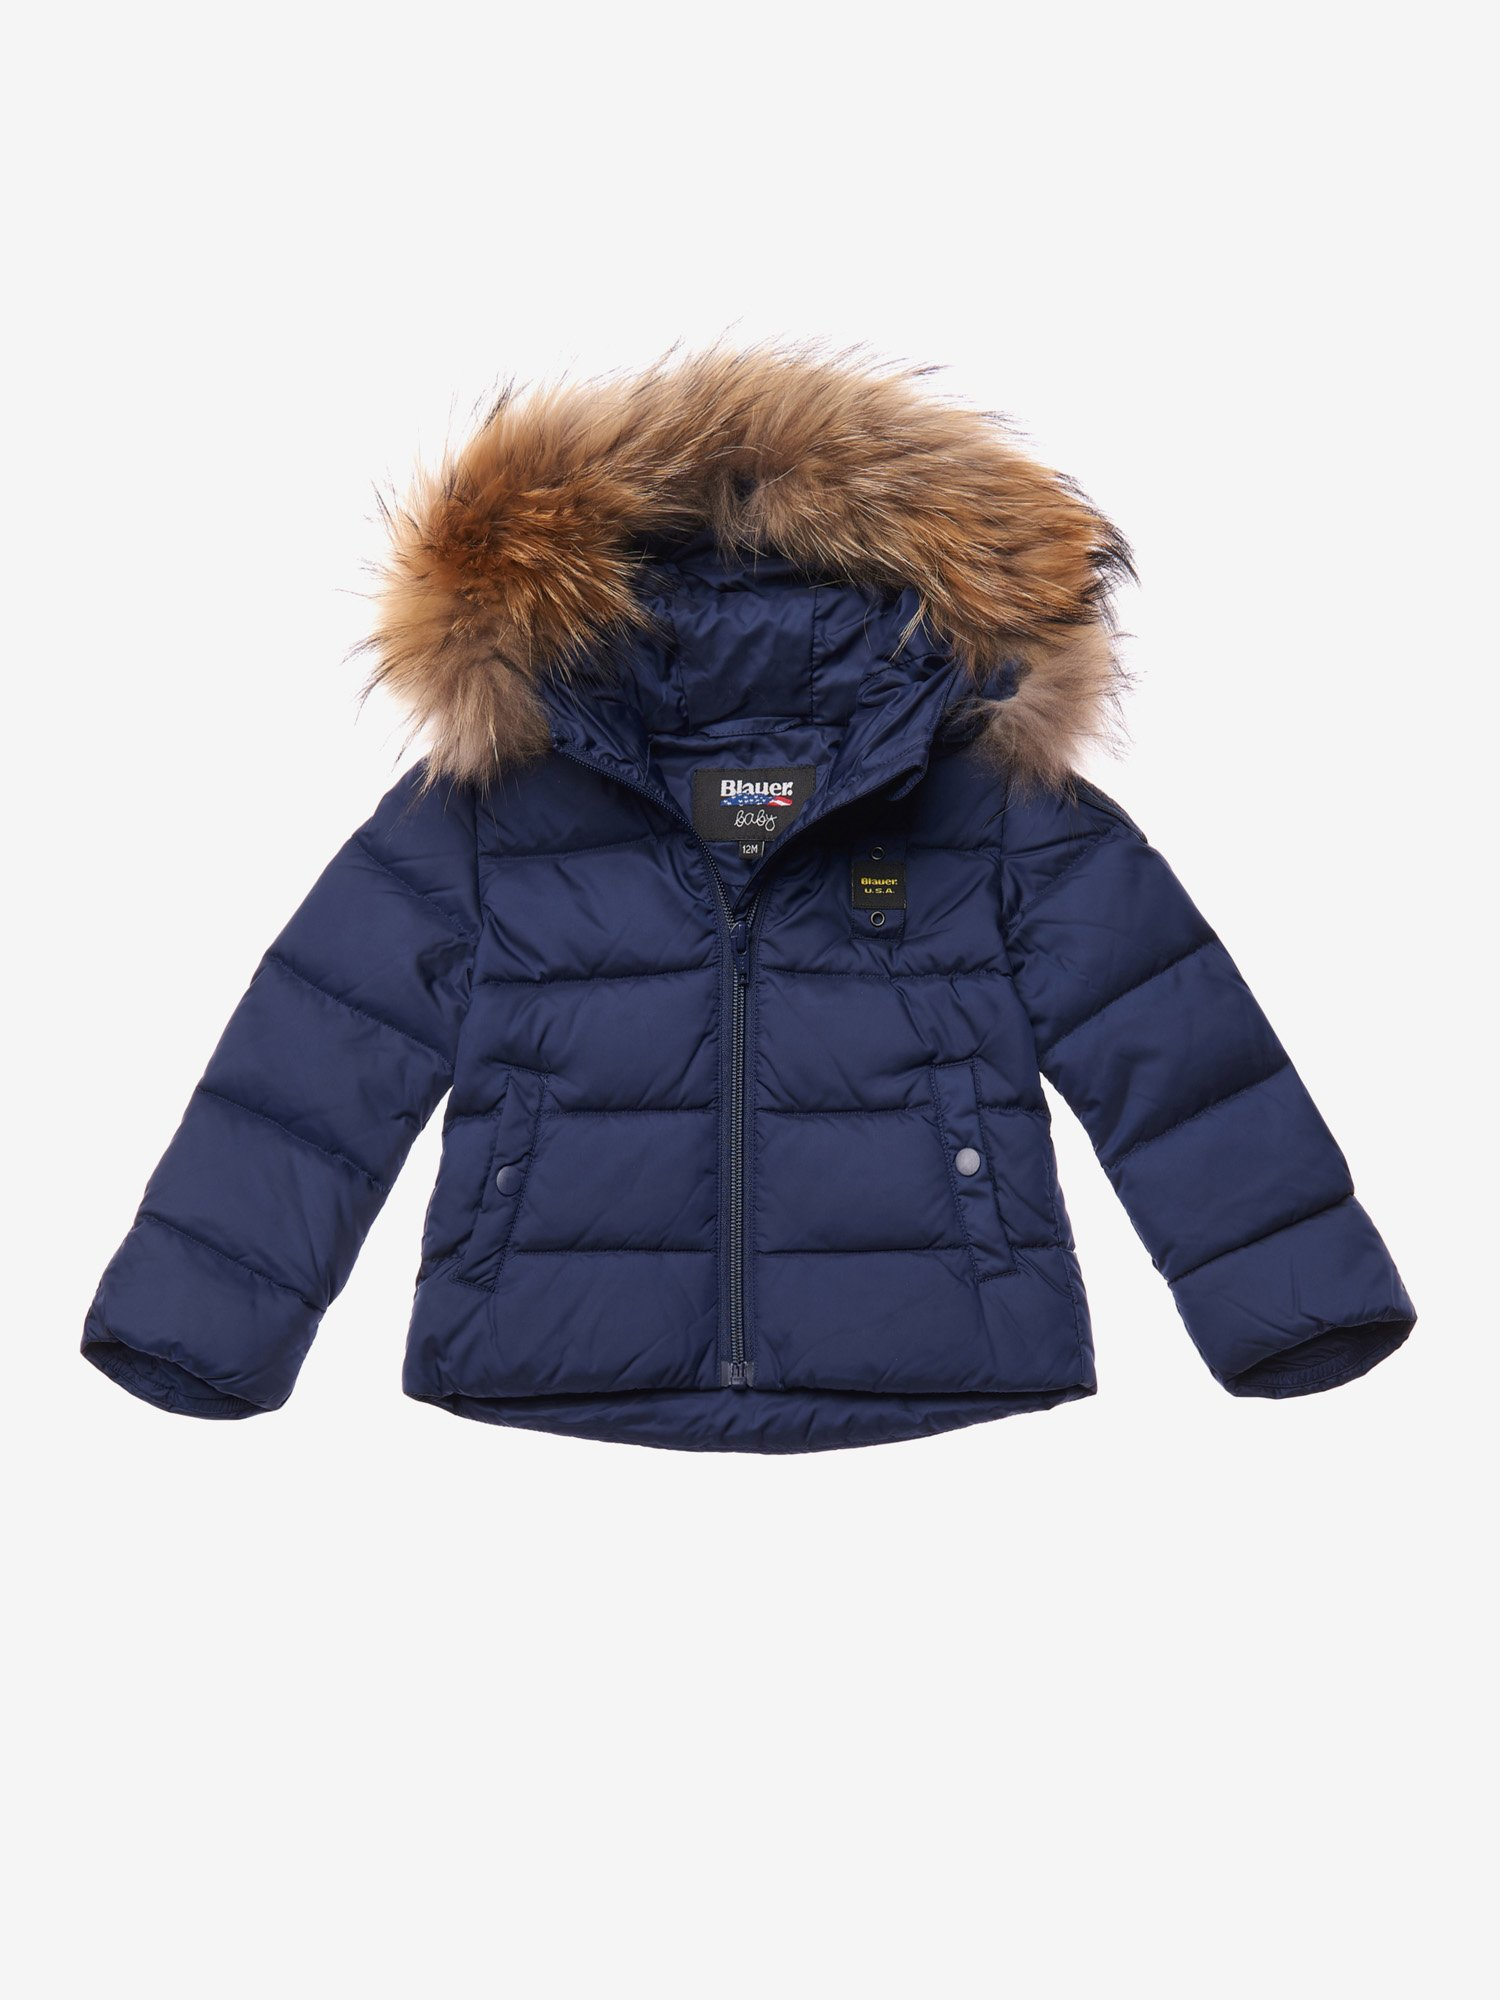 Blauer - BARRETT BABY DOWN JACKET WITH HOOD AND FUR - Blue Ionio - Blauer